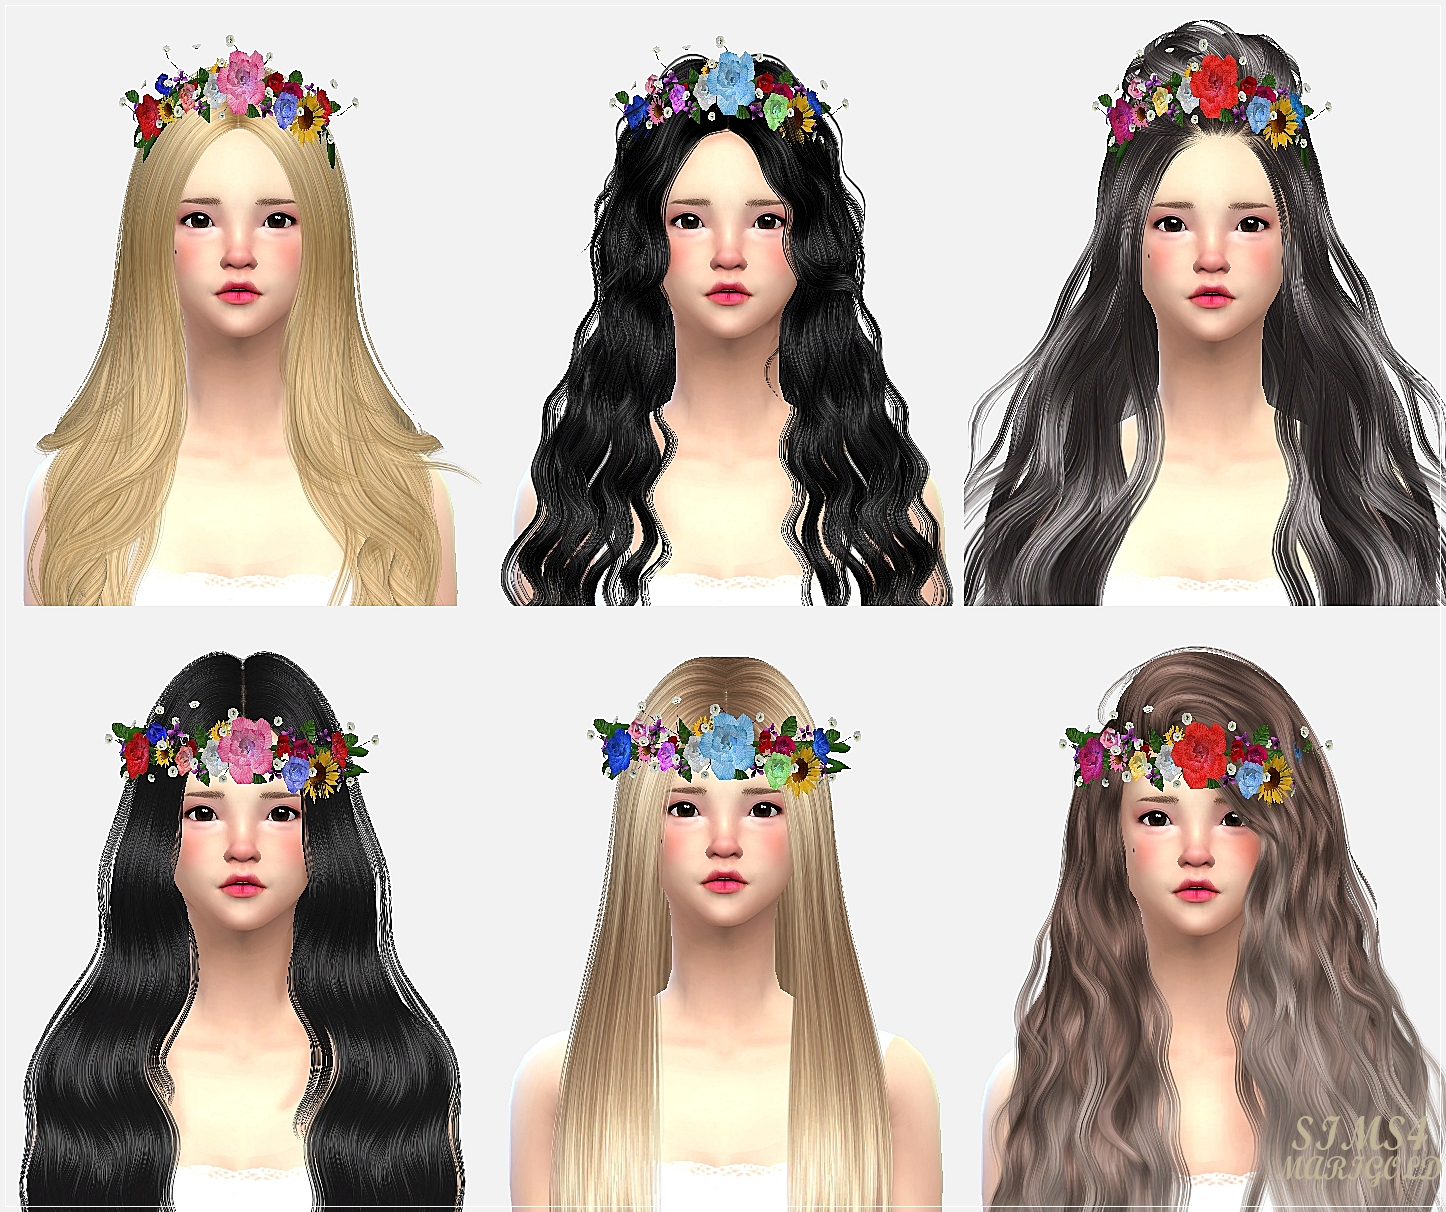 The sims 4 hair accessories - Flower Crown For Males Females By Sims 4 Marigold